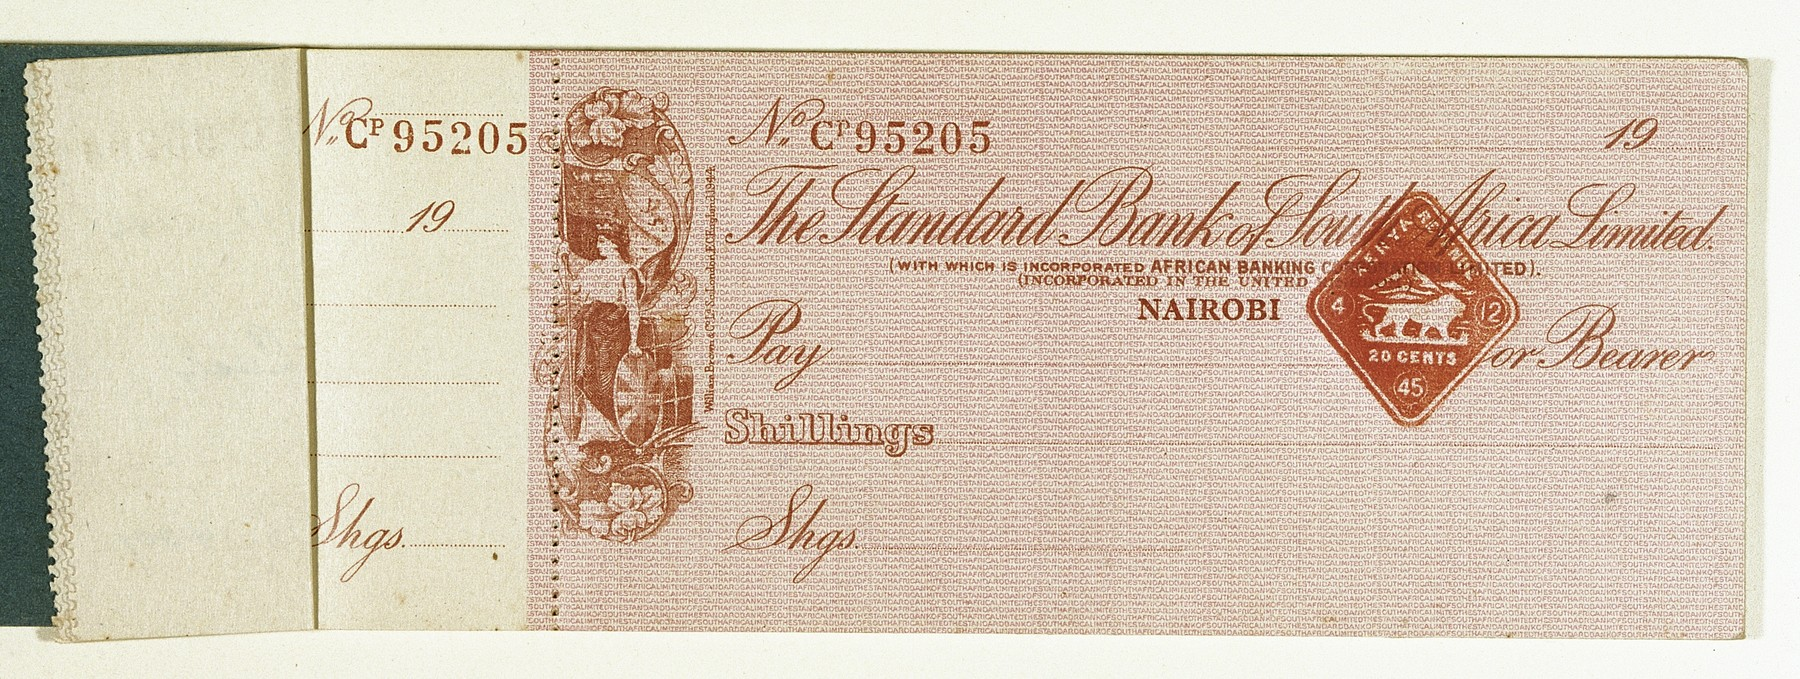 Blank check issued by the Standard Bank of South Africa in Nairobi, Kenya to the Berg family.